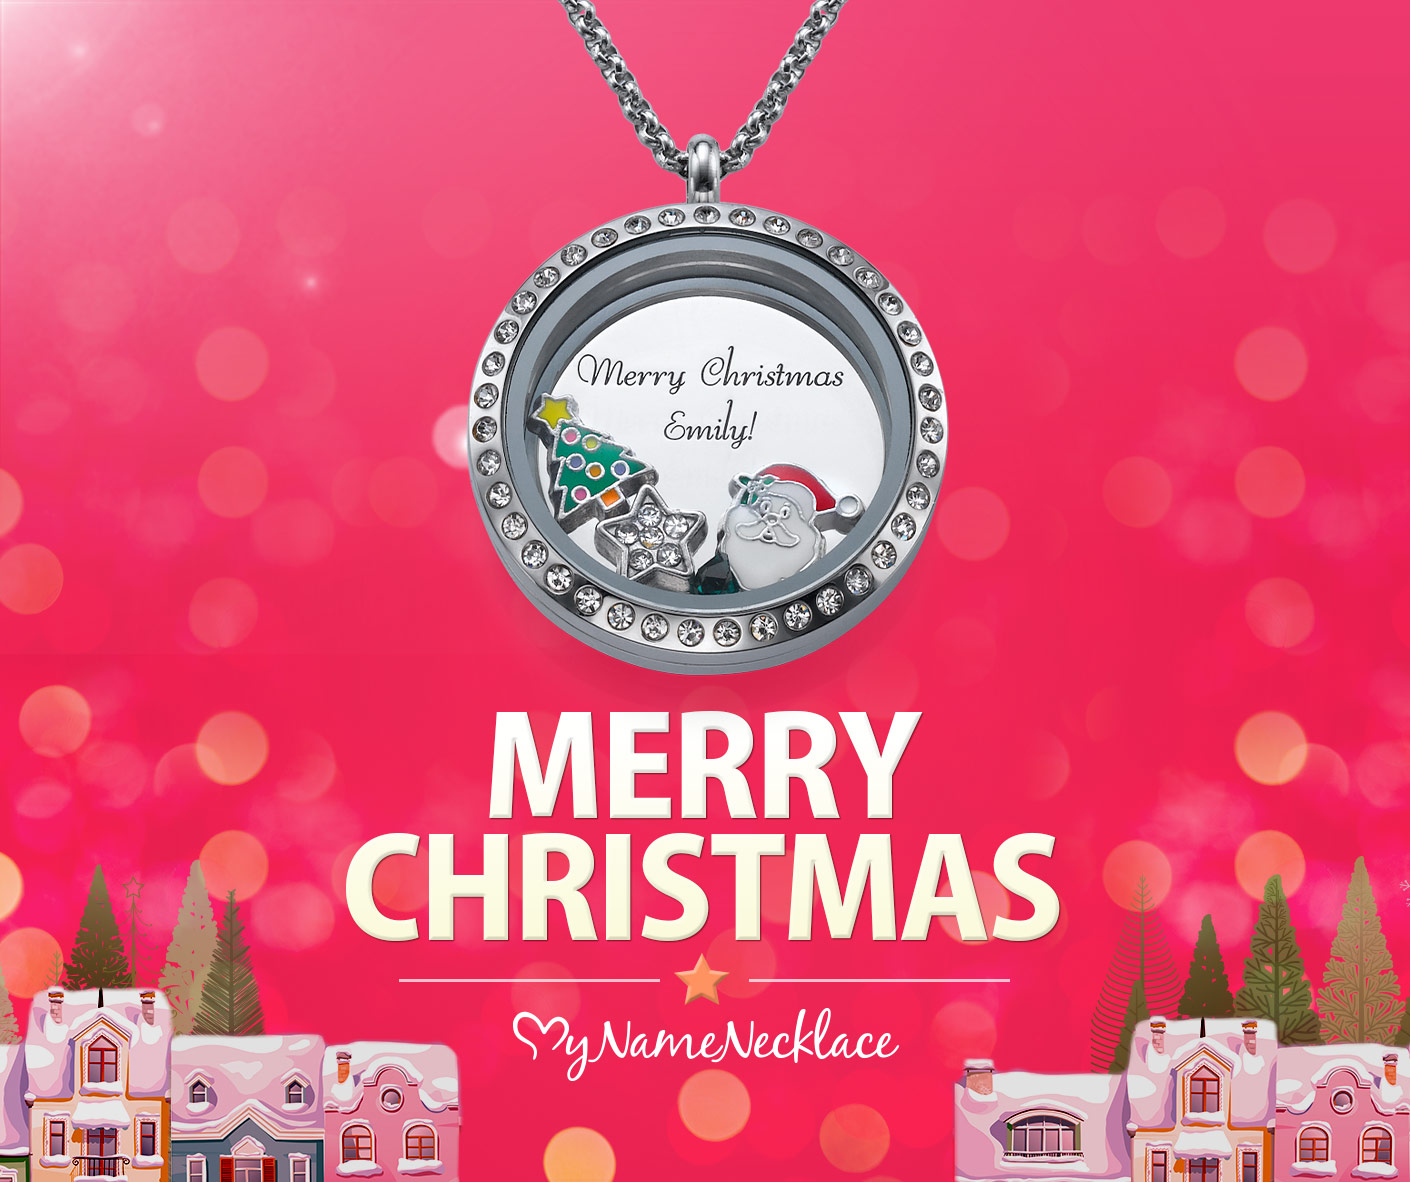 Merry Christmas from MyNameNecklace